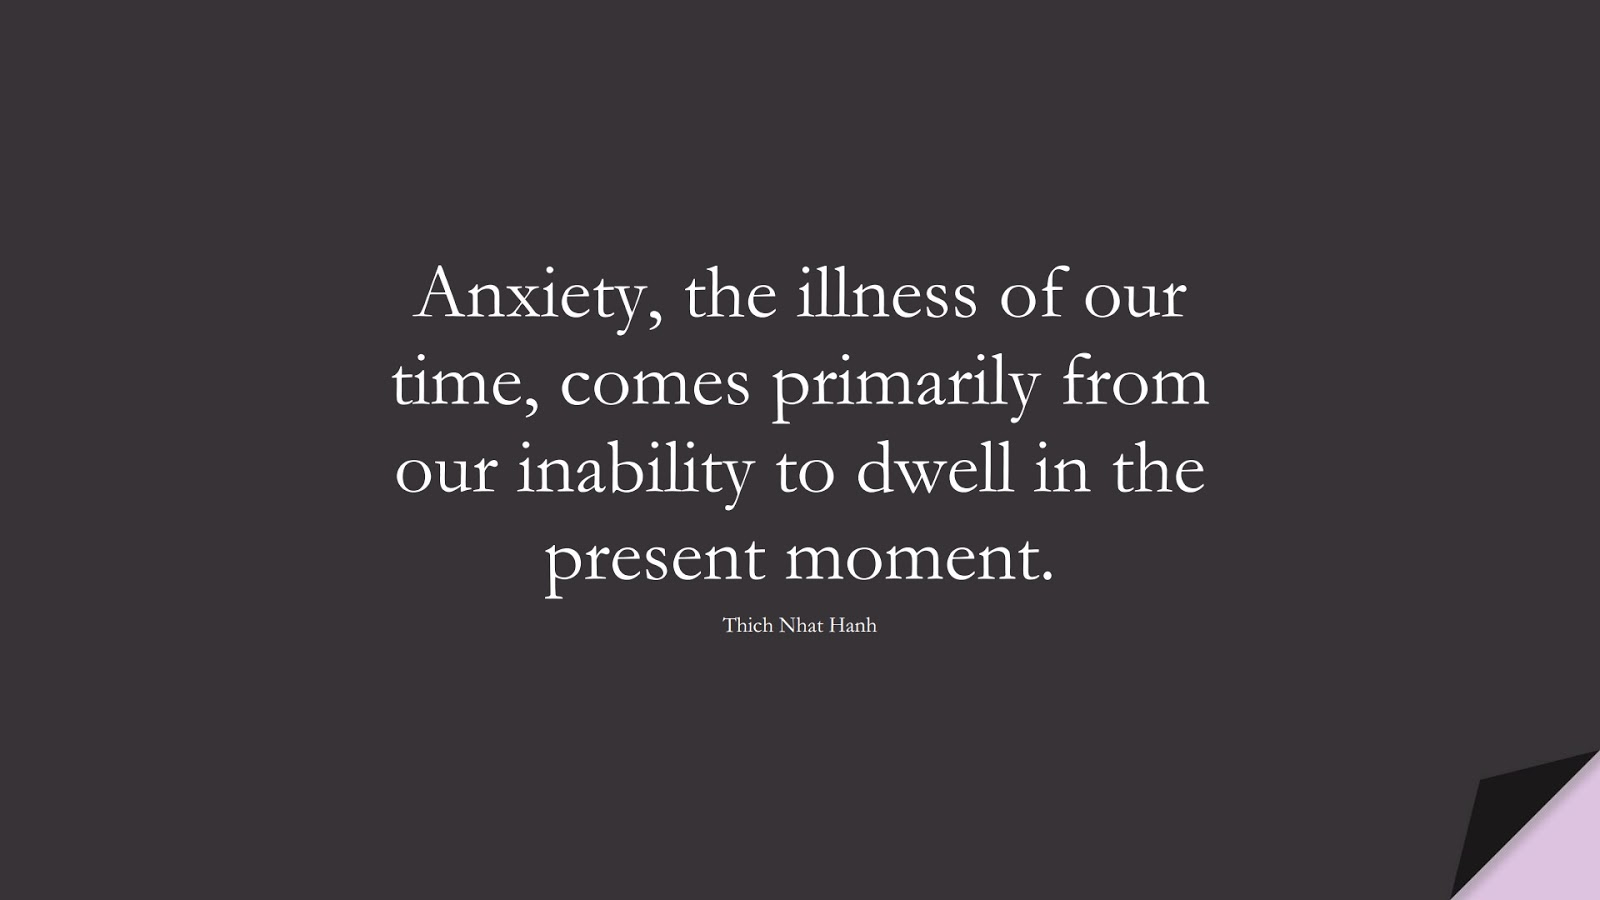 Anxiety, the illness of our time, comes primarily from our inability to dwell in the present moment. (Thich Nhat Hanh);  #AnxietyQuotes